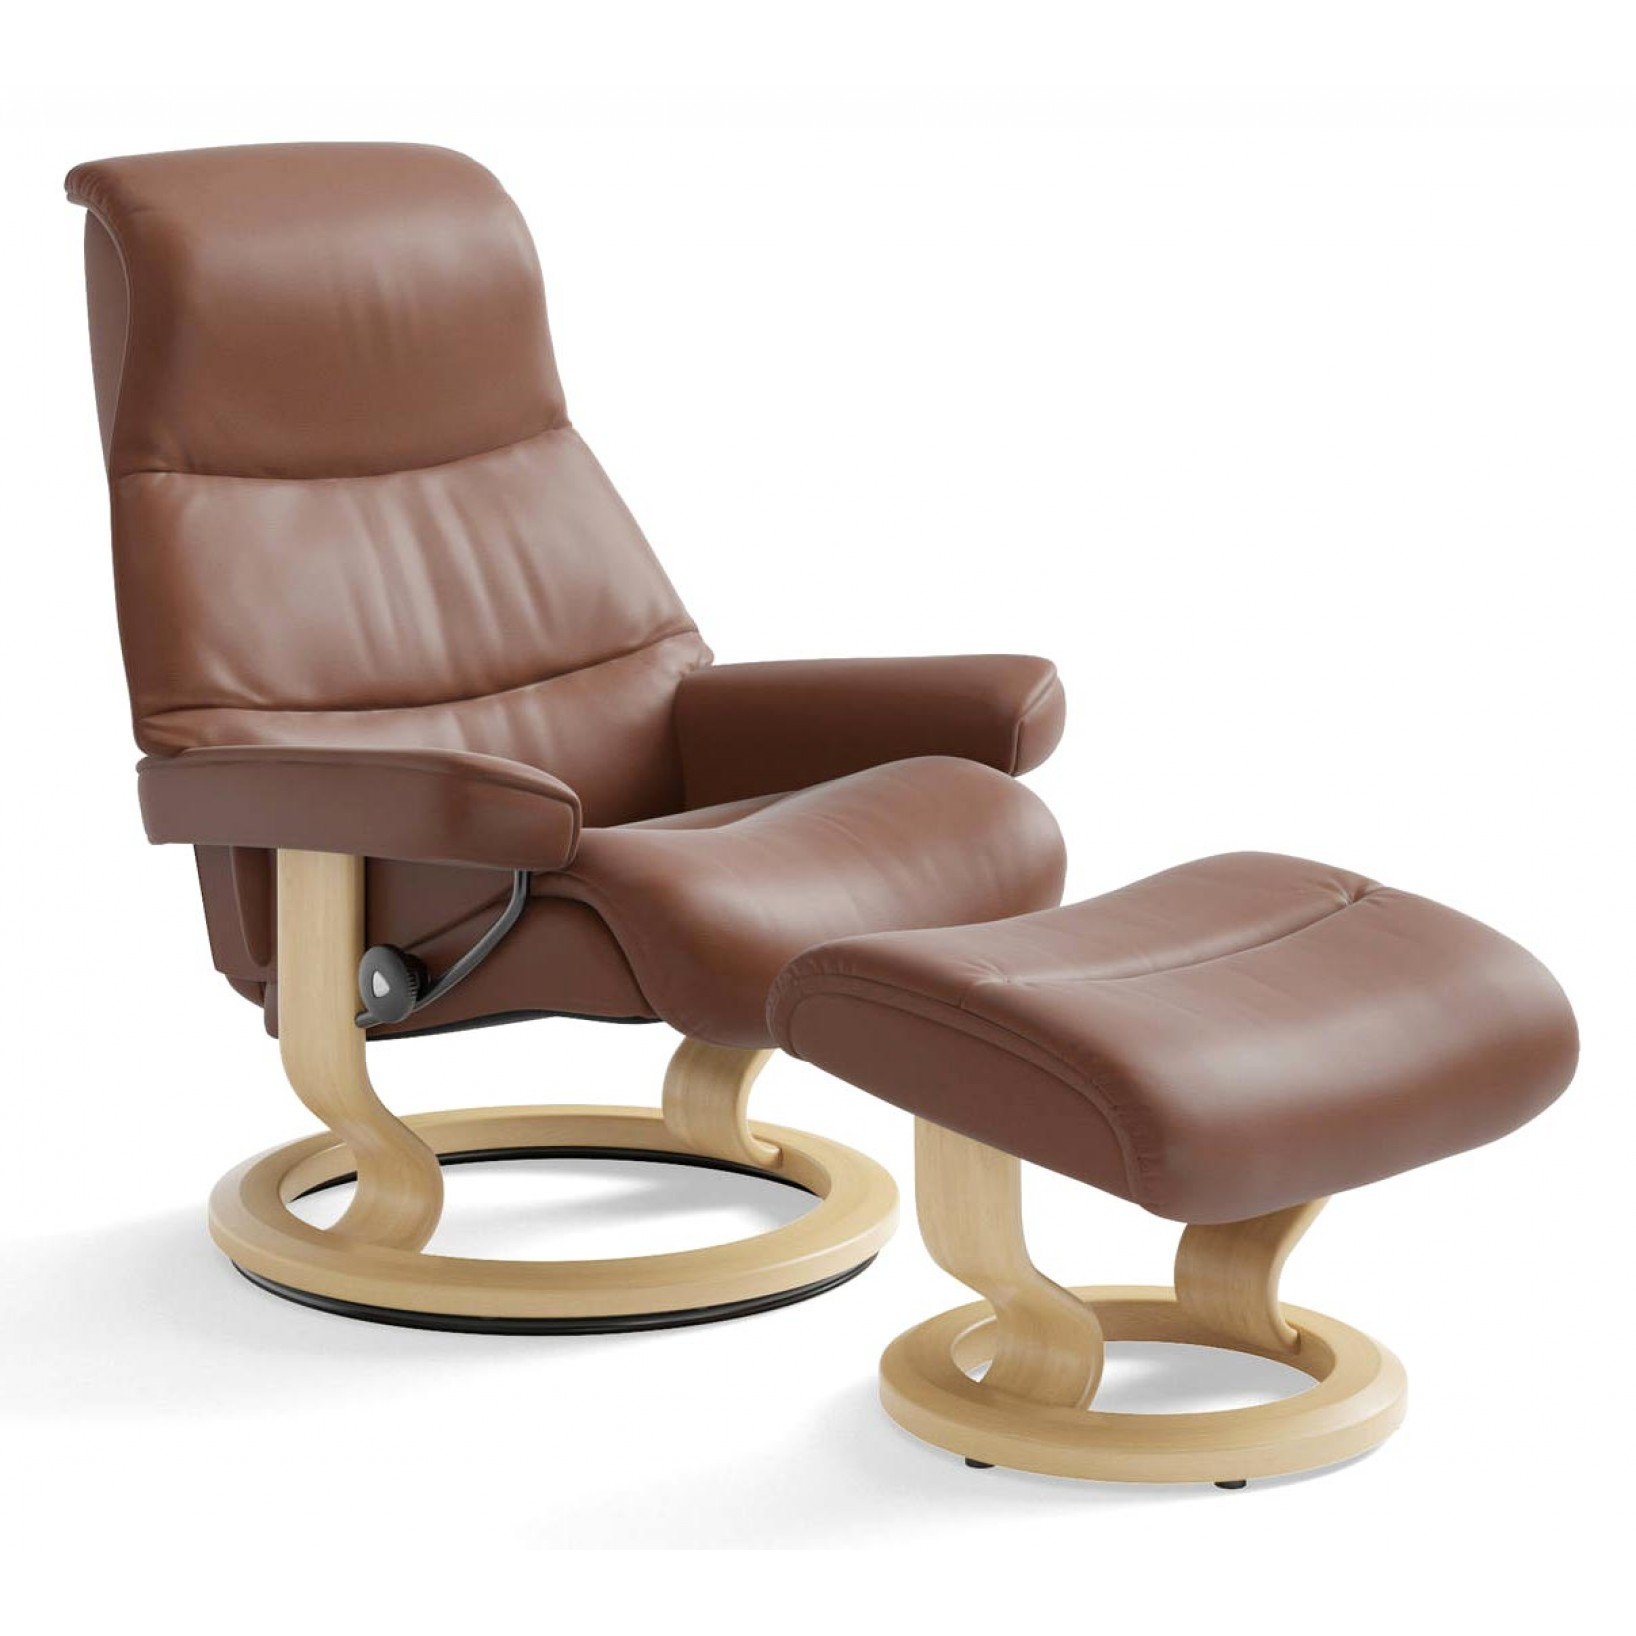 Stressless View Classic Recliner Amp Ottoman From 3 195 00